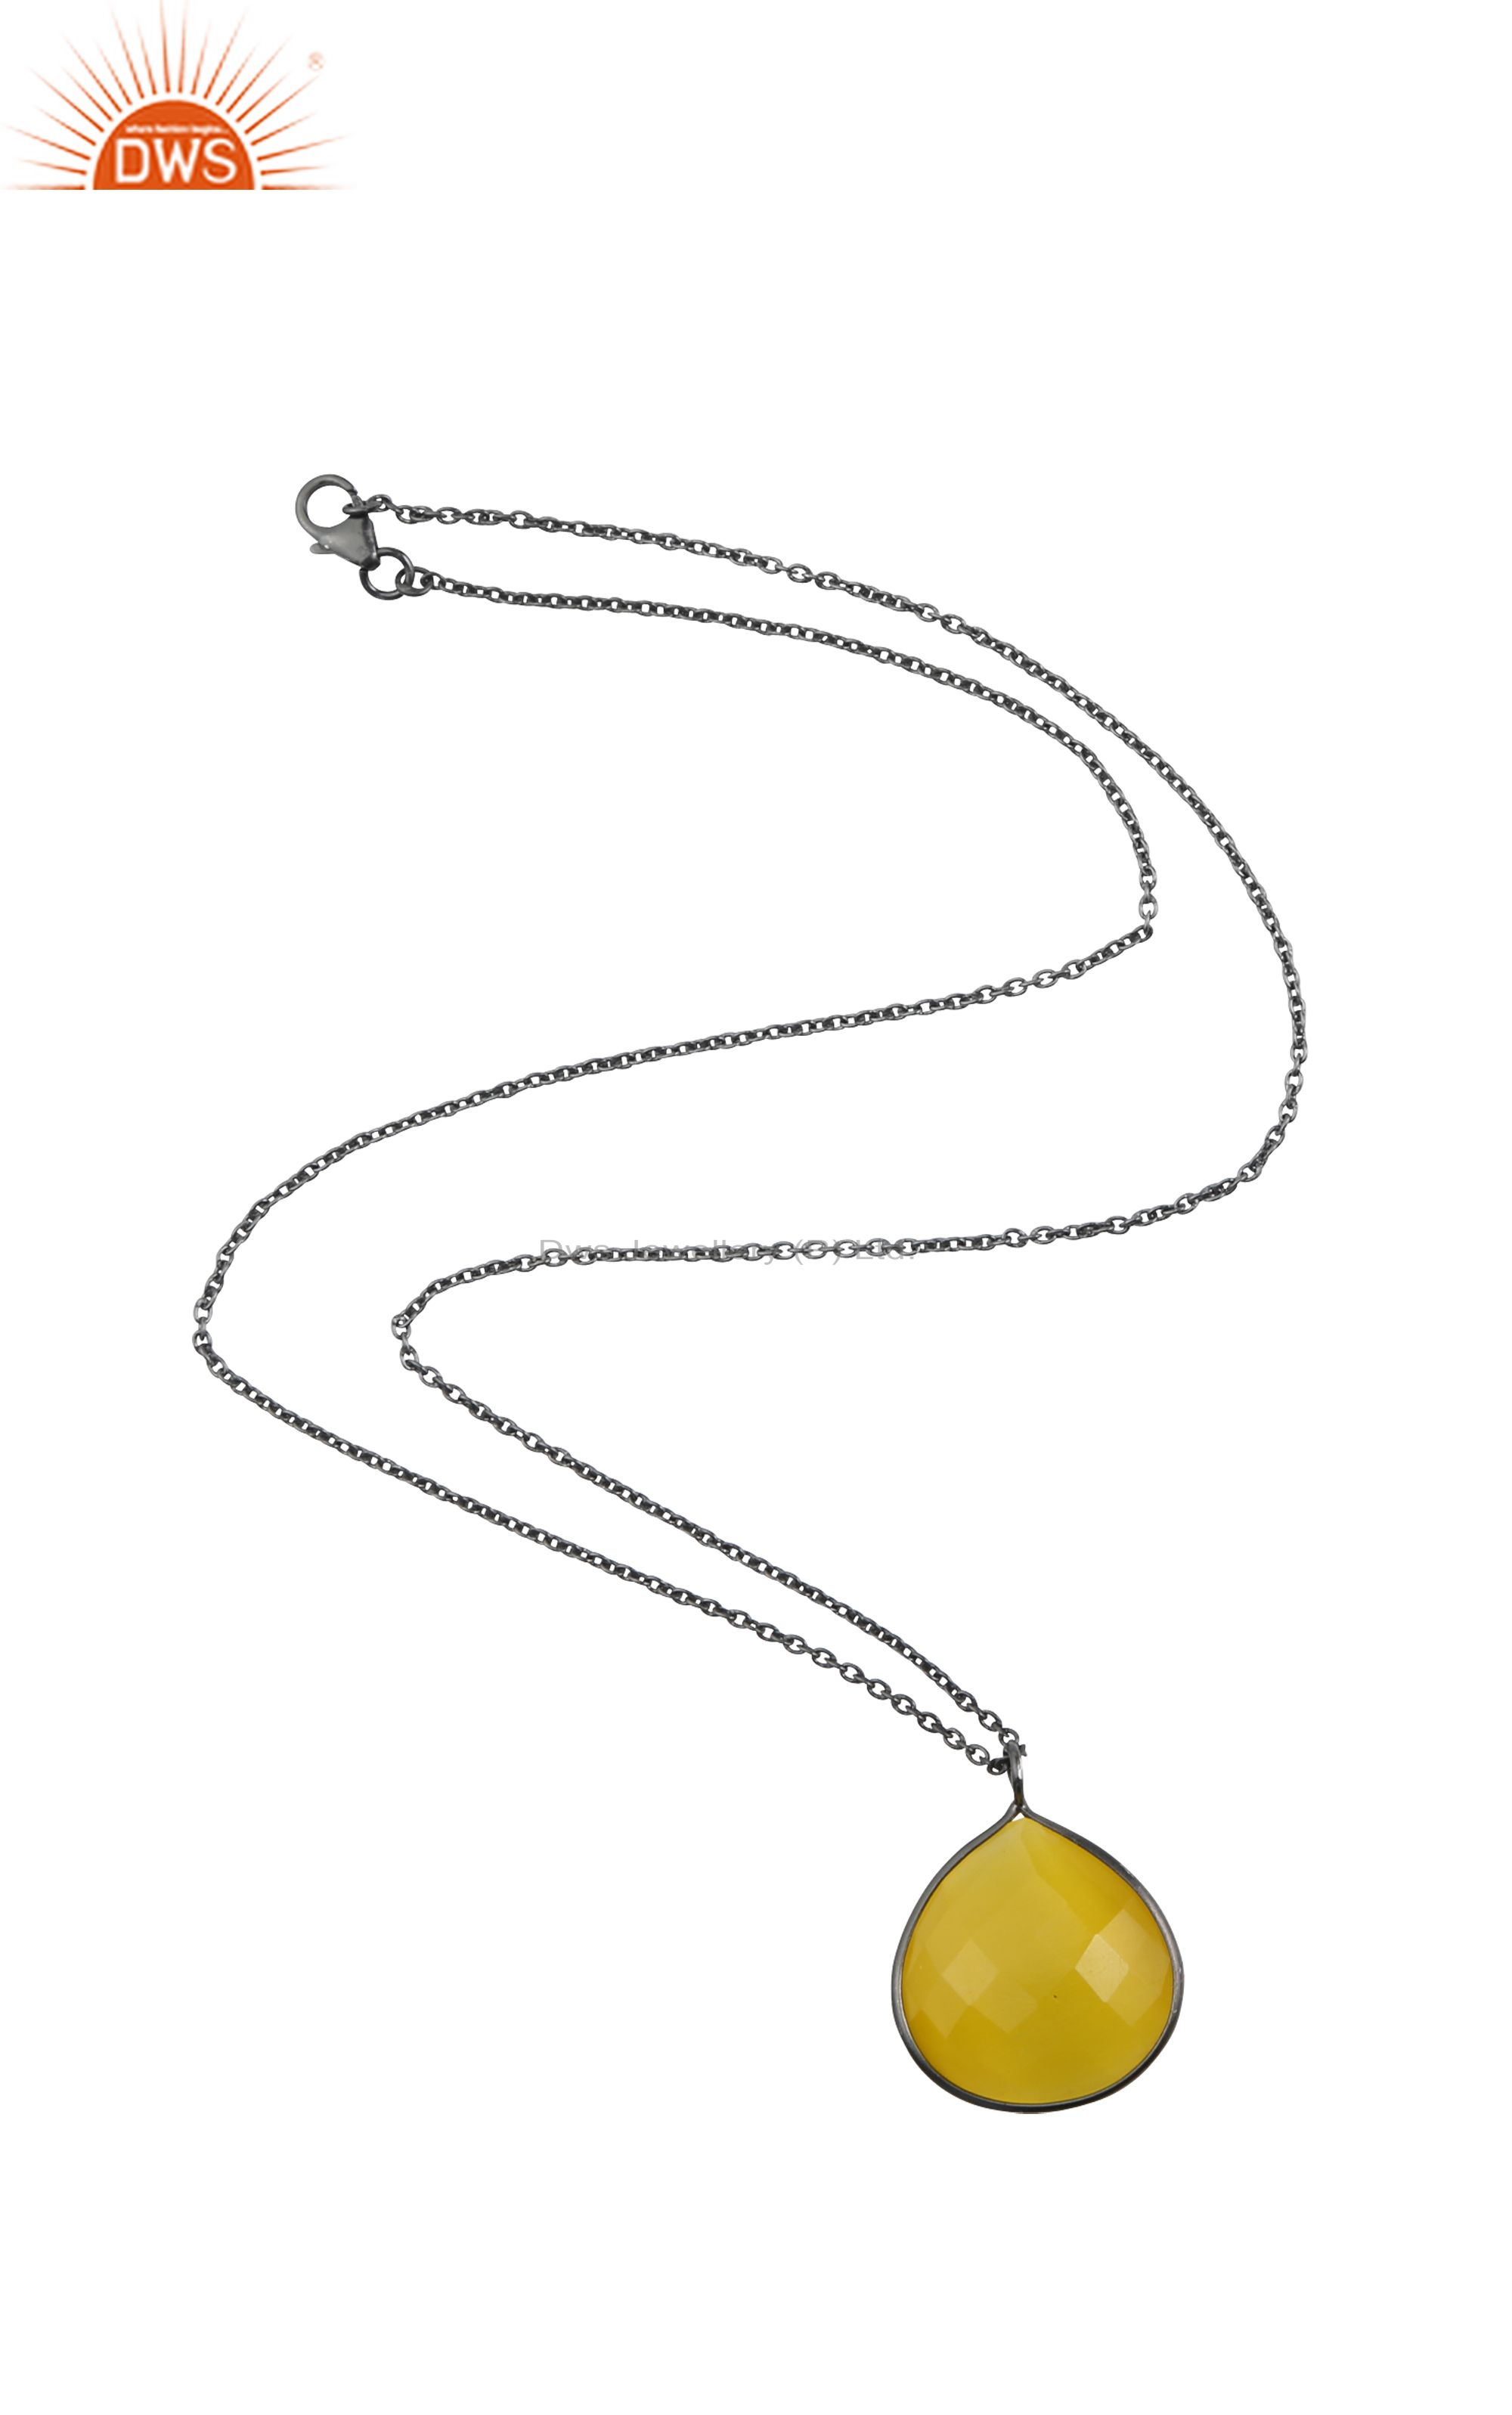 Oxidized sterling silver yellow moonstone bezel set pendant with chain